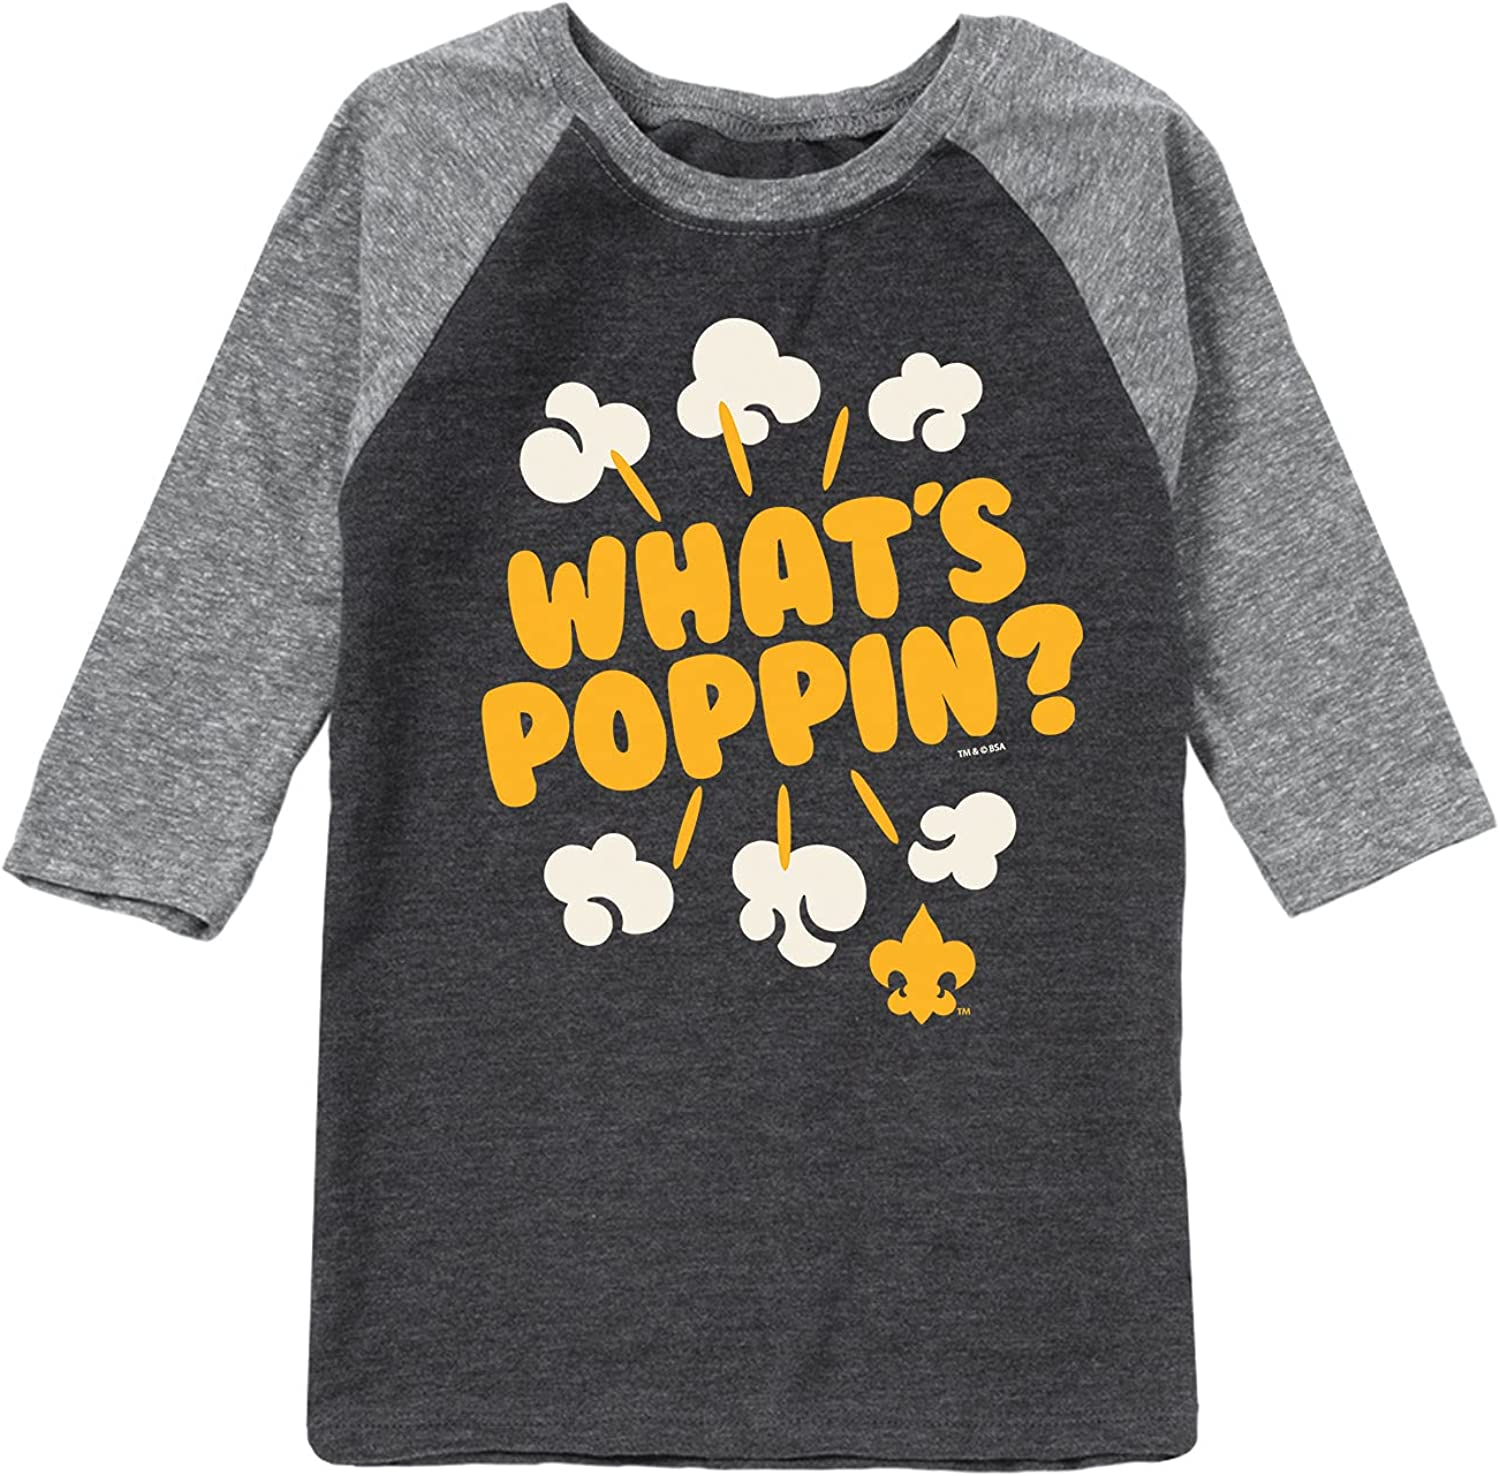 BSA Whats Poppin - Toddler and Youth Raglan T-Shirt